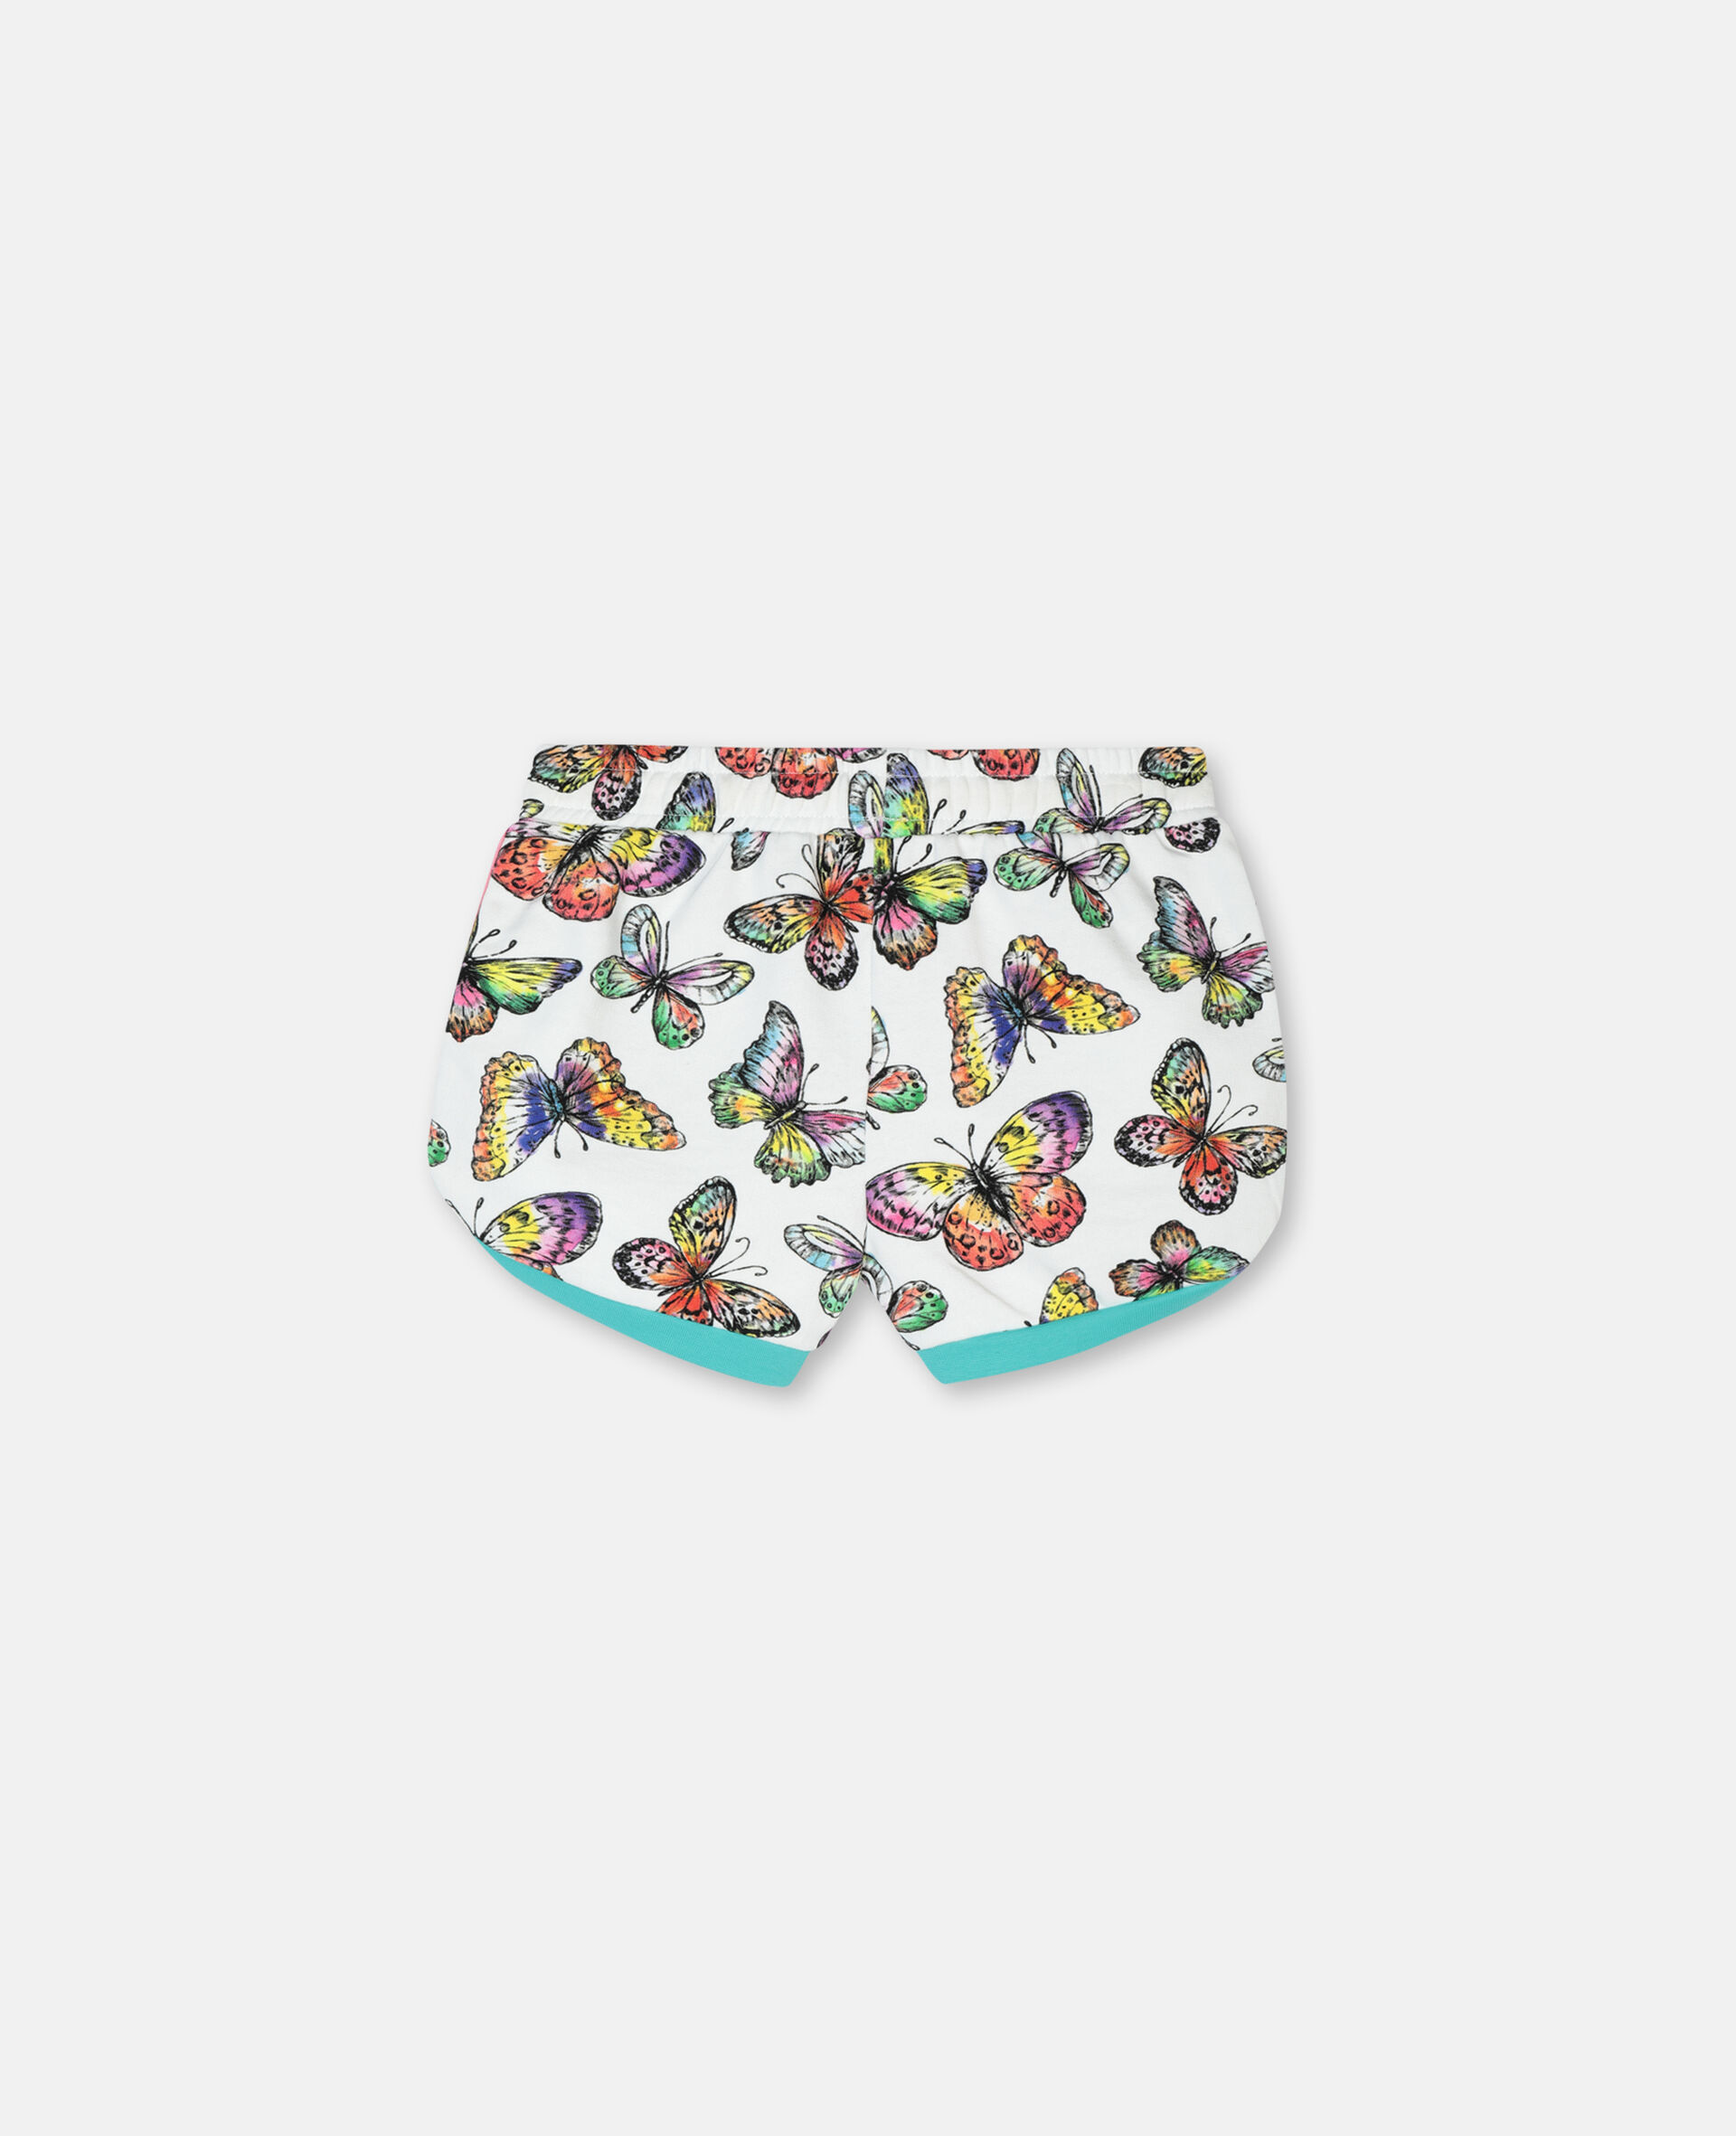 Butterfly Cotton Fleece Shorts-Multicolour-large image number 3